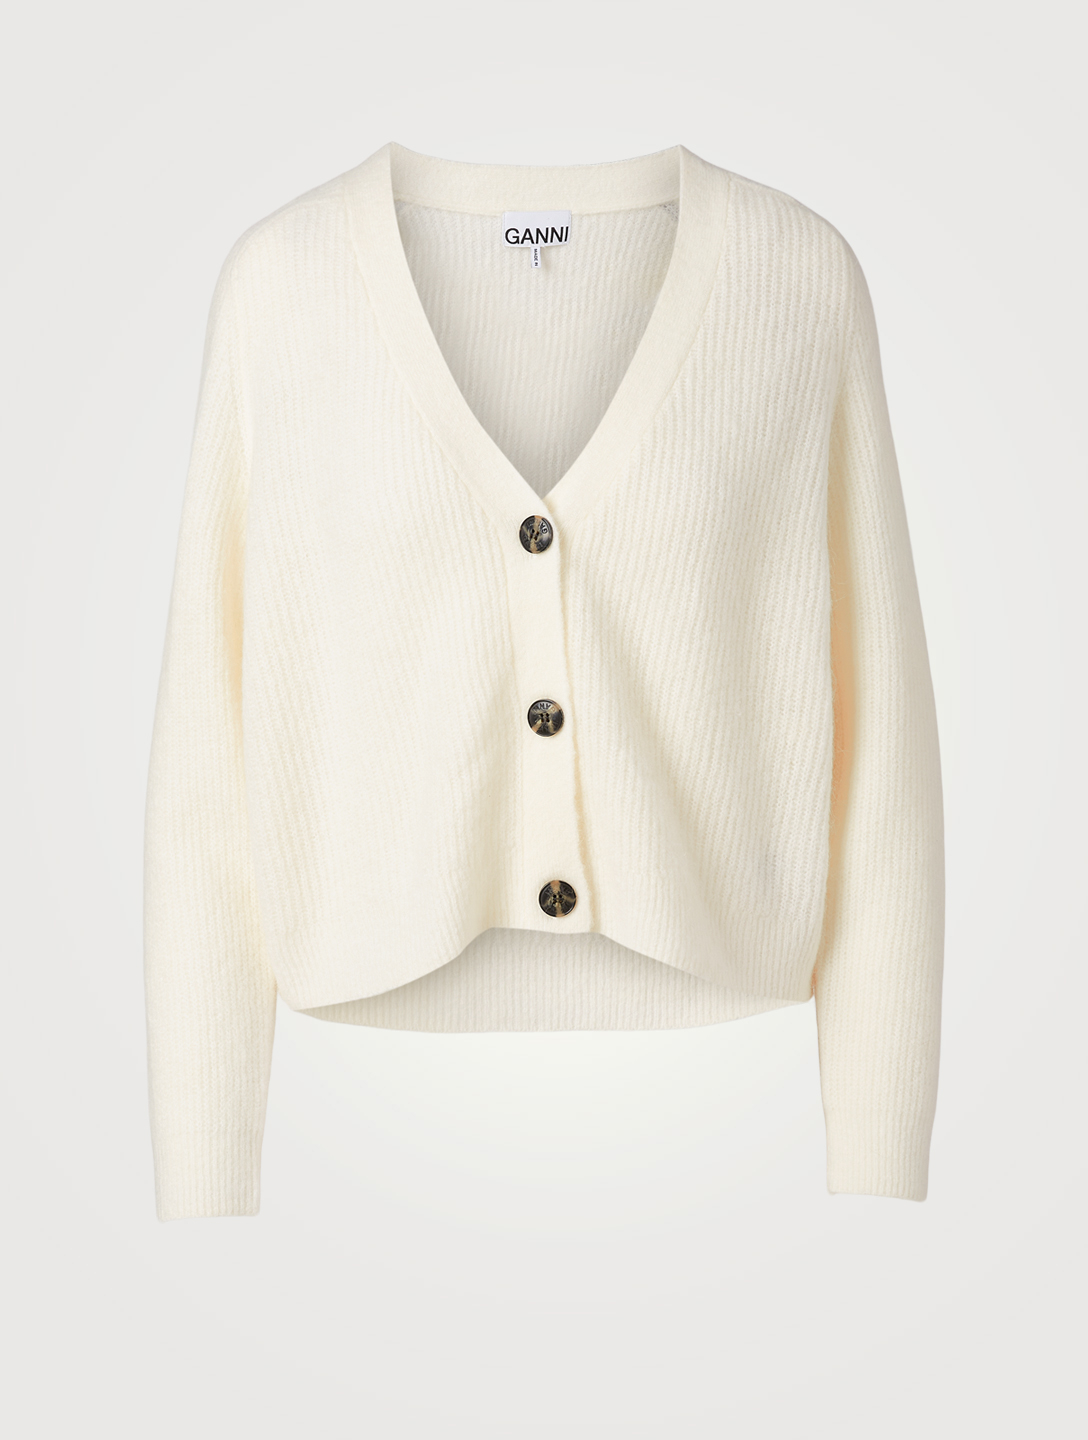 GANNI Alpaca And Wool Cardigan Women's White